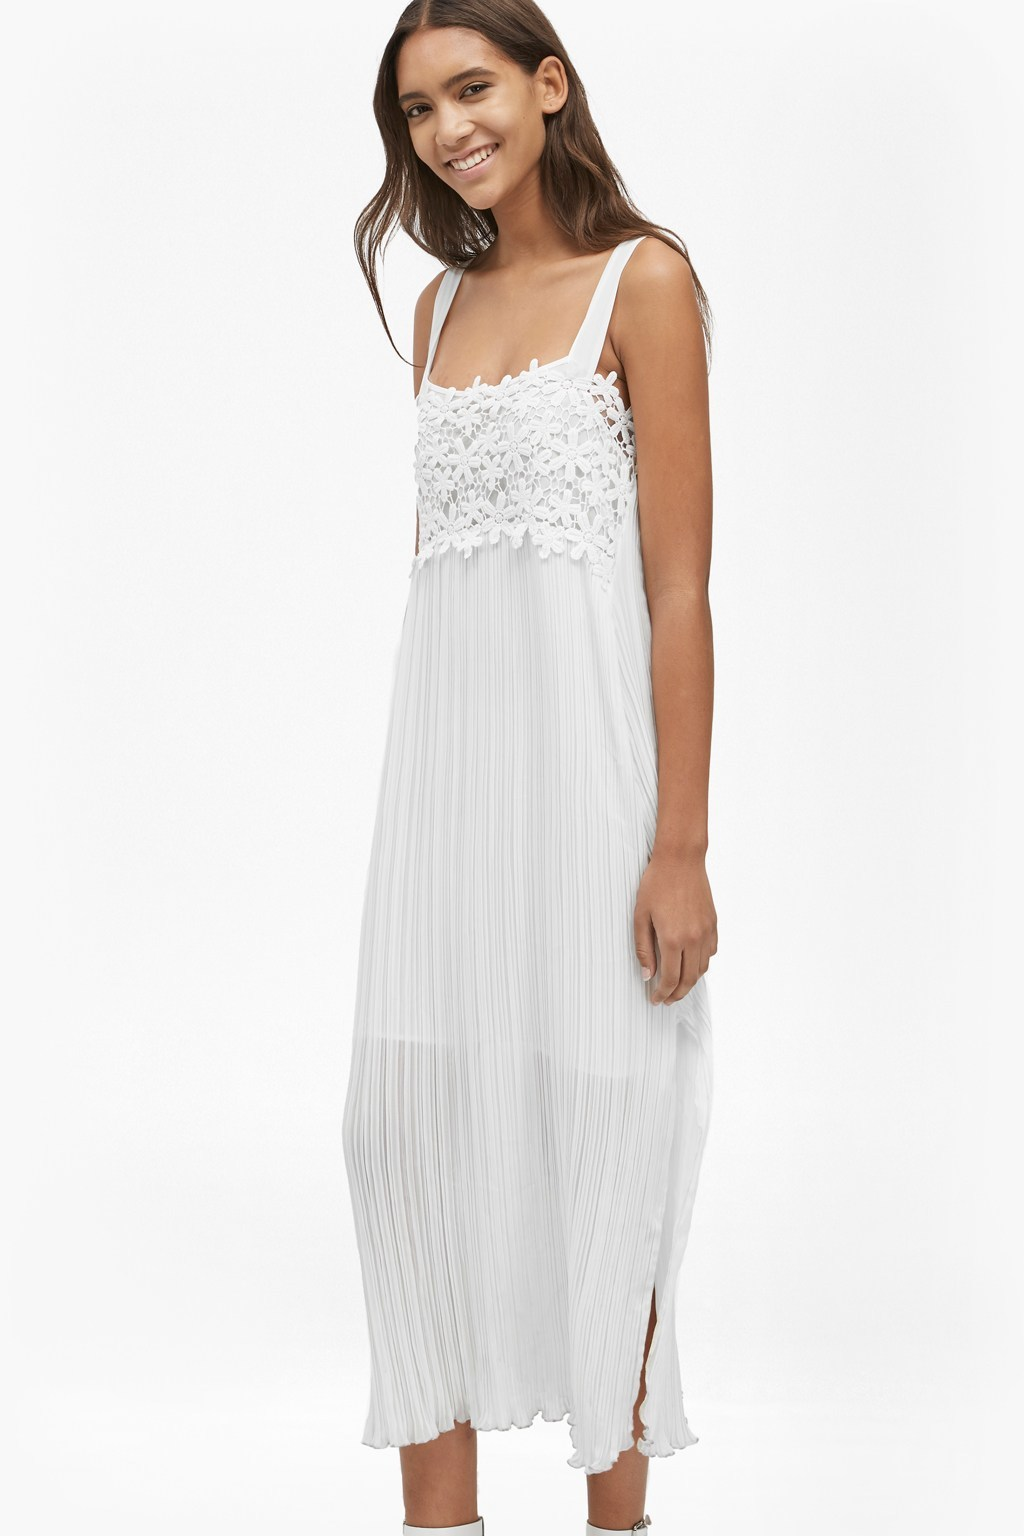 Posy Lace Strappy Maxi Dress Summer White - sleeve style: sleeveless; style: maxi dress; length: ankle length; predominant colour: ivory/cream; occasions: casual; fit: body skimming; fibres: polyester/polyamide - 100%; sleeve length: sleeveless; texture group: lace; neckline: medium square neck; pattern type: fabric; pattern size: standard; pattern: patterned/print; embellishment: lace; season: s/s 2016; wardrobe: highlight; embellishment location: bust